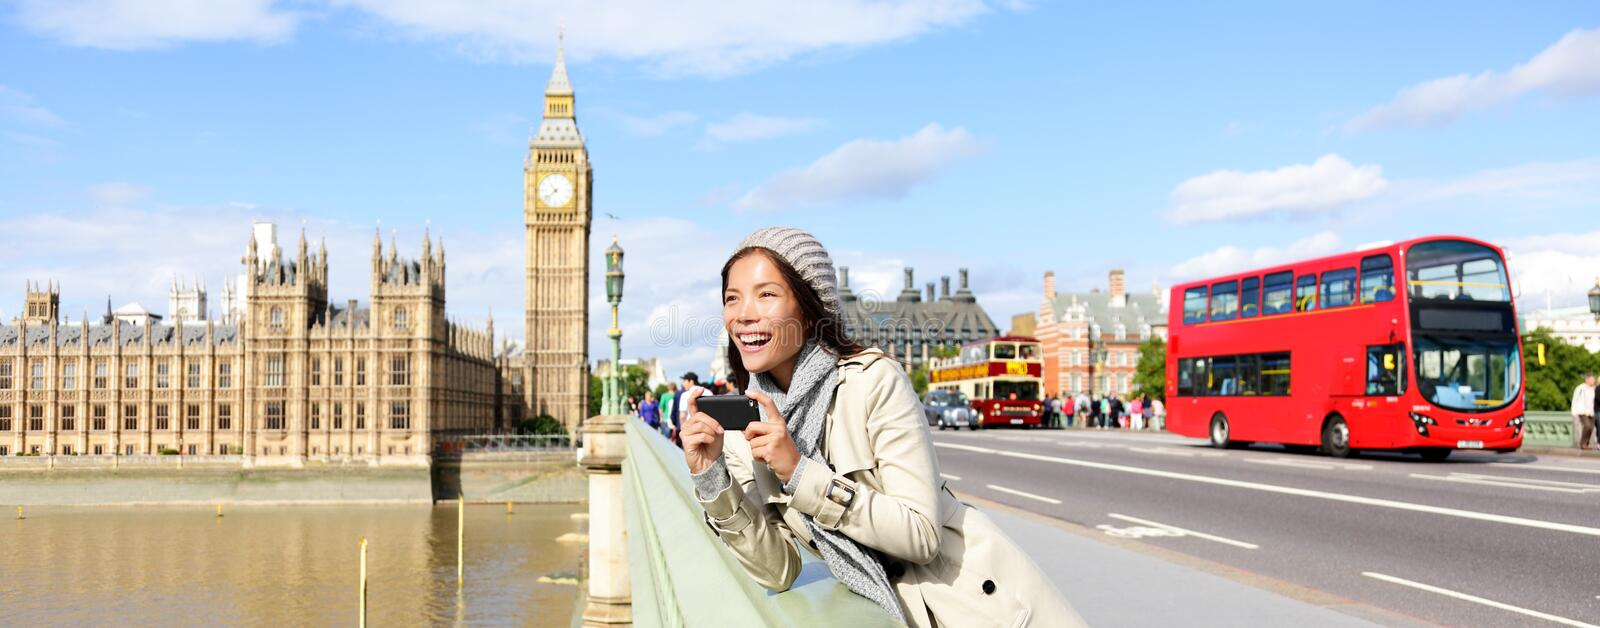 London travel banner - woman and Big Ben royalty free stock photos